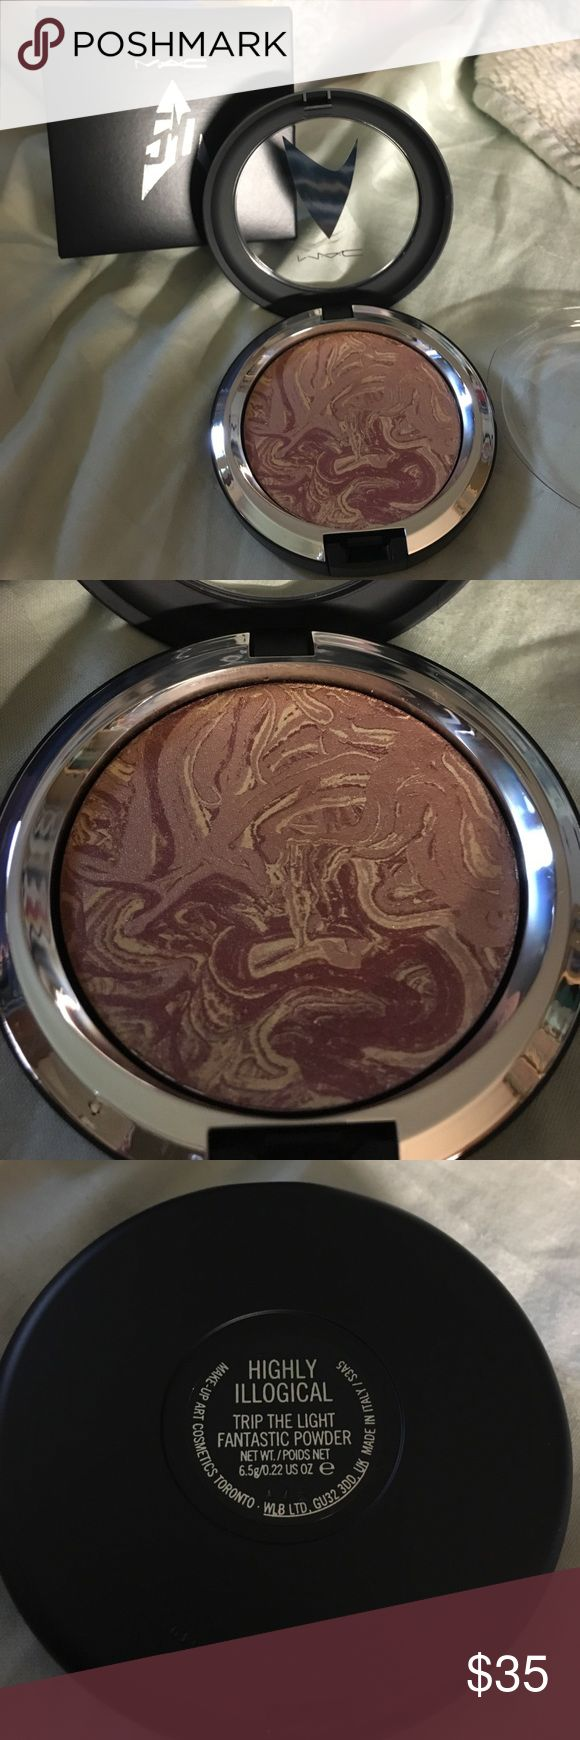 NIB MAC x StarTrek Trip The Light Fantastic Powder NIB MAC x StarTrek Trip The Light Fantastic Powder in Highly Illogical. Limited Edition collaboration, beautiful lustrous face Powder. Unused and never swatched. Macys label partially removed to prevent return. MAC Cosmetics Makeup Face Powder